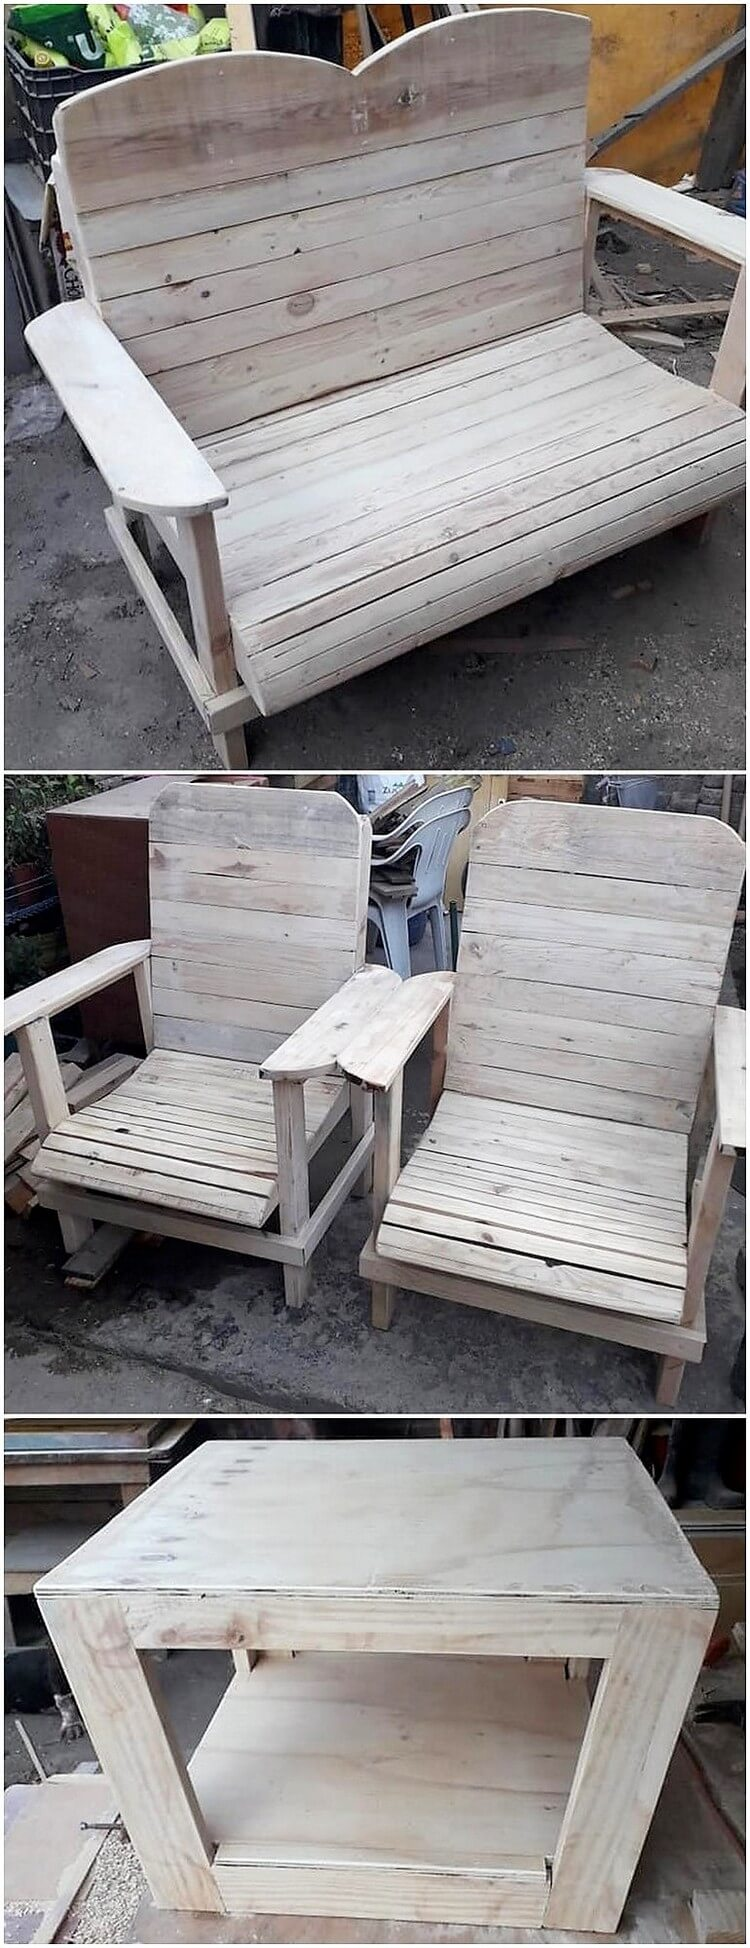 Pallet Bench Chairs and Table